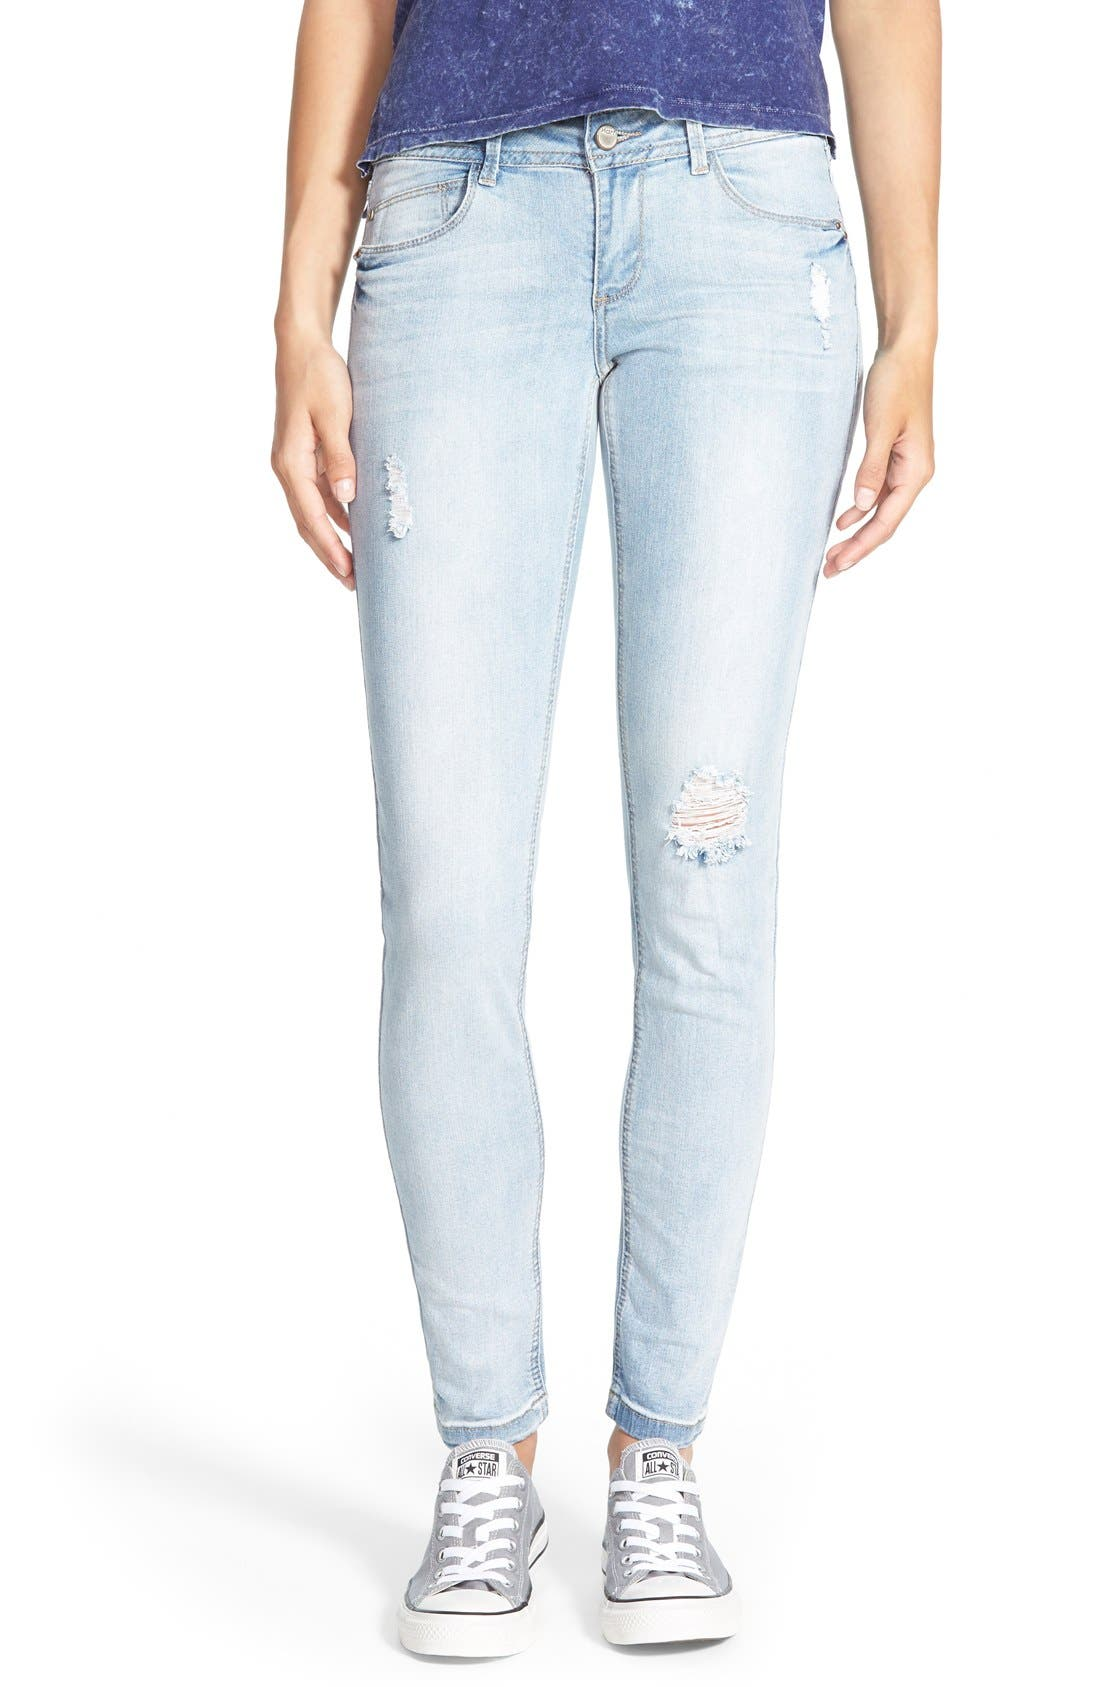 Alternate Image 1 Selected - HART Denim Deconstructed Skinny Jeans (Light)